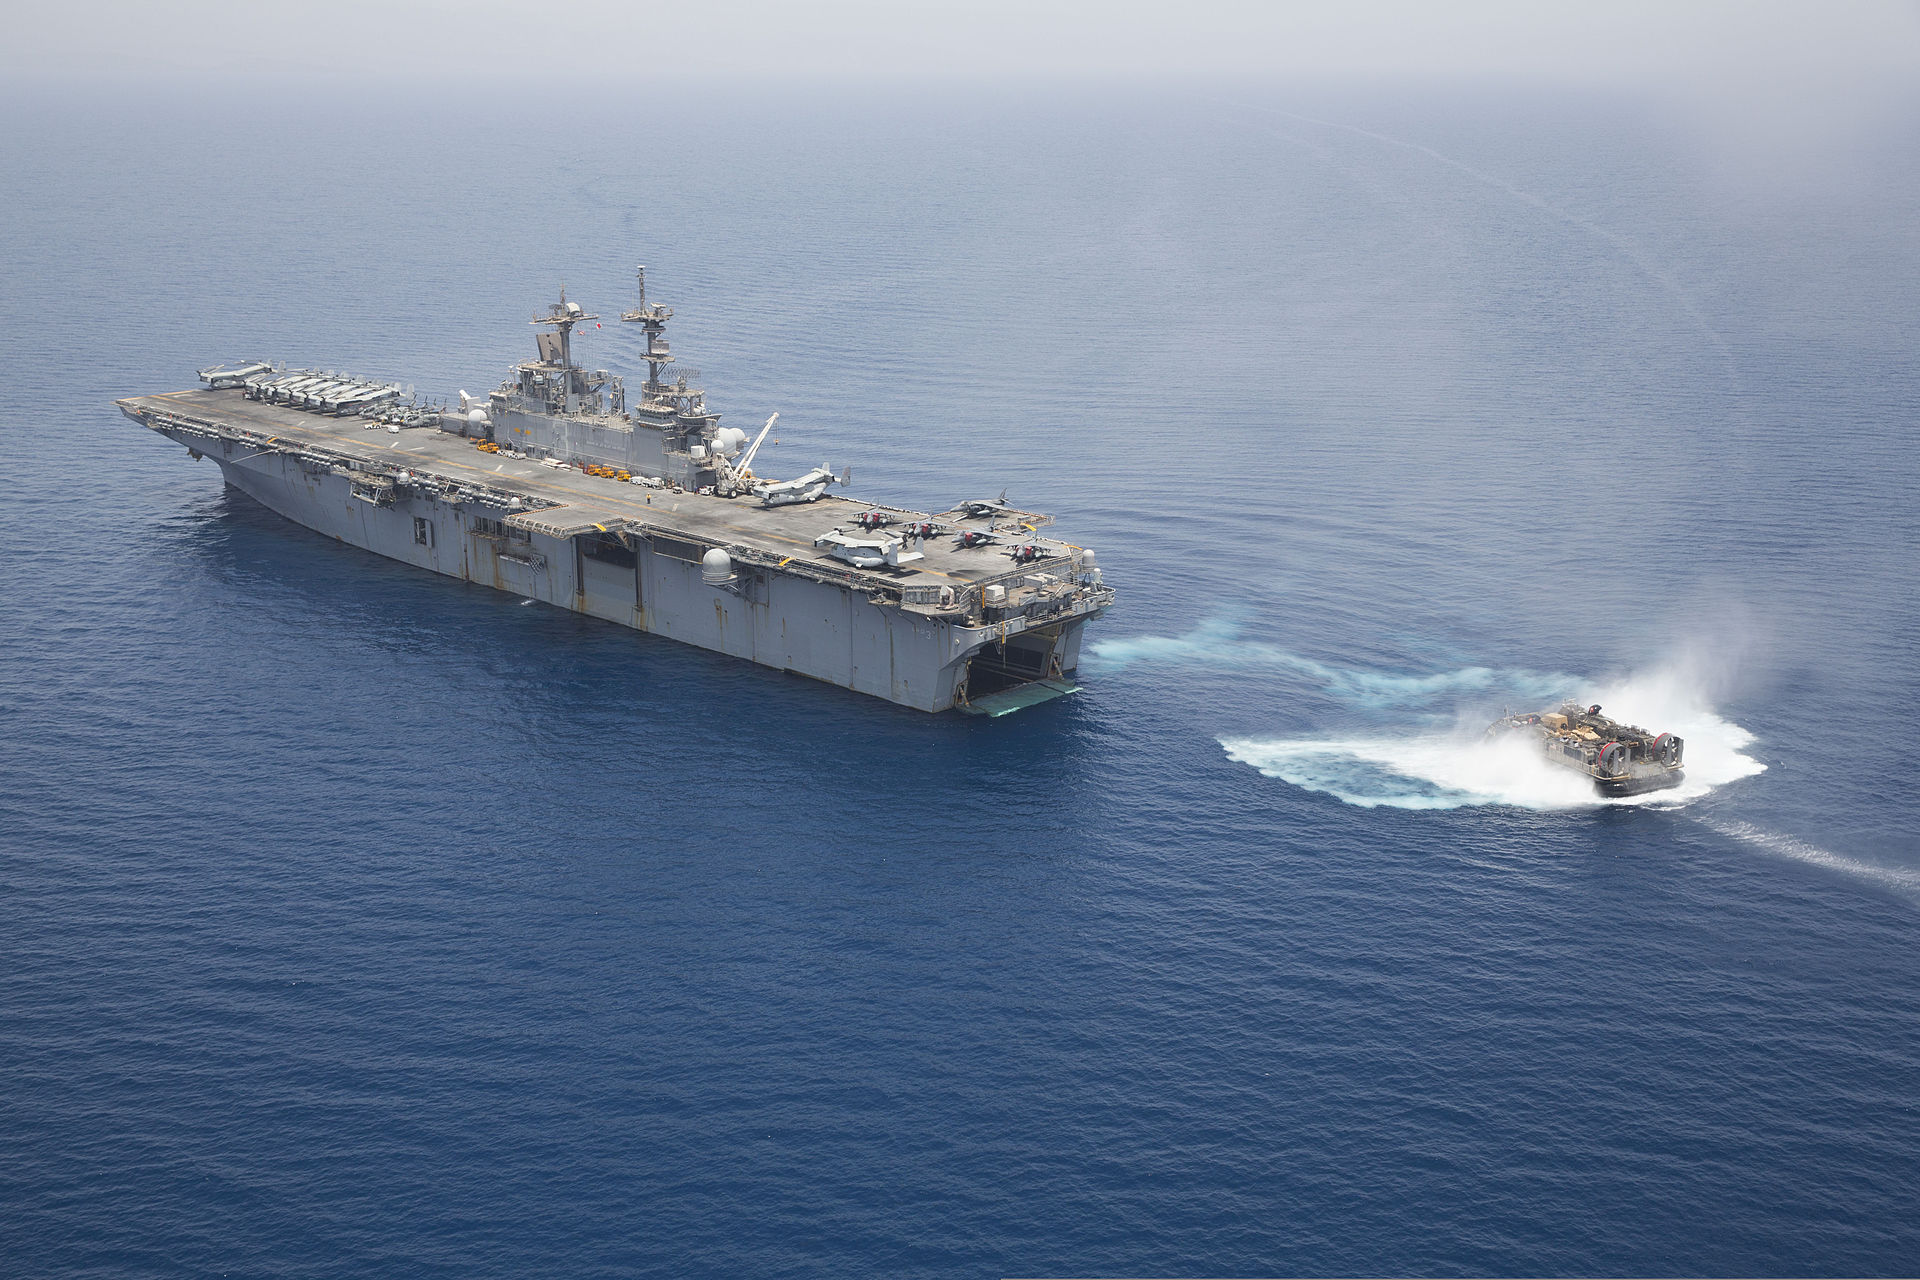 https://upload.wikimedia.org/wikipedia/commons/thumb/8/88/A_U.S._Navy_landing_craft%2C_air_cushion_approaches_the_well_deck_of_the_amphibious_assault_ship_USS_Kearsarge_%28LHD_3%29_in_the_Gulf_of_Aden_May_30%2C_2013_130530-N-SB587-1018.jpg/1920px-thumbnail.jpg